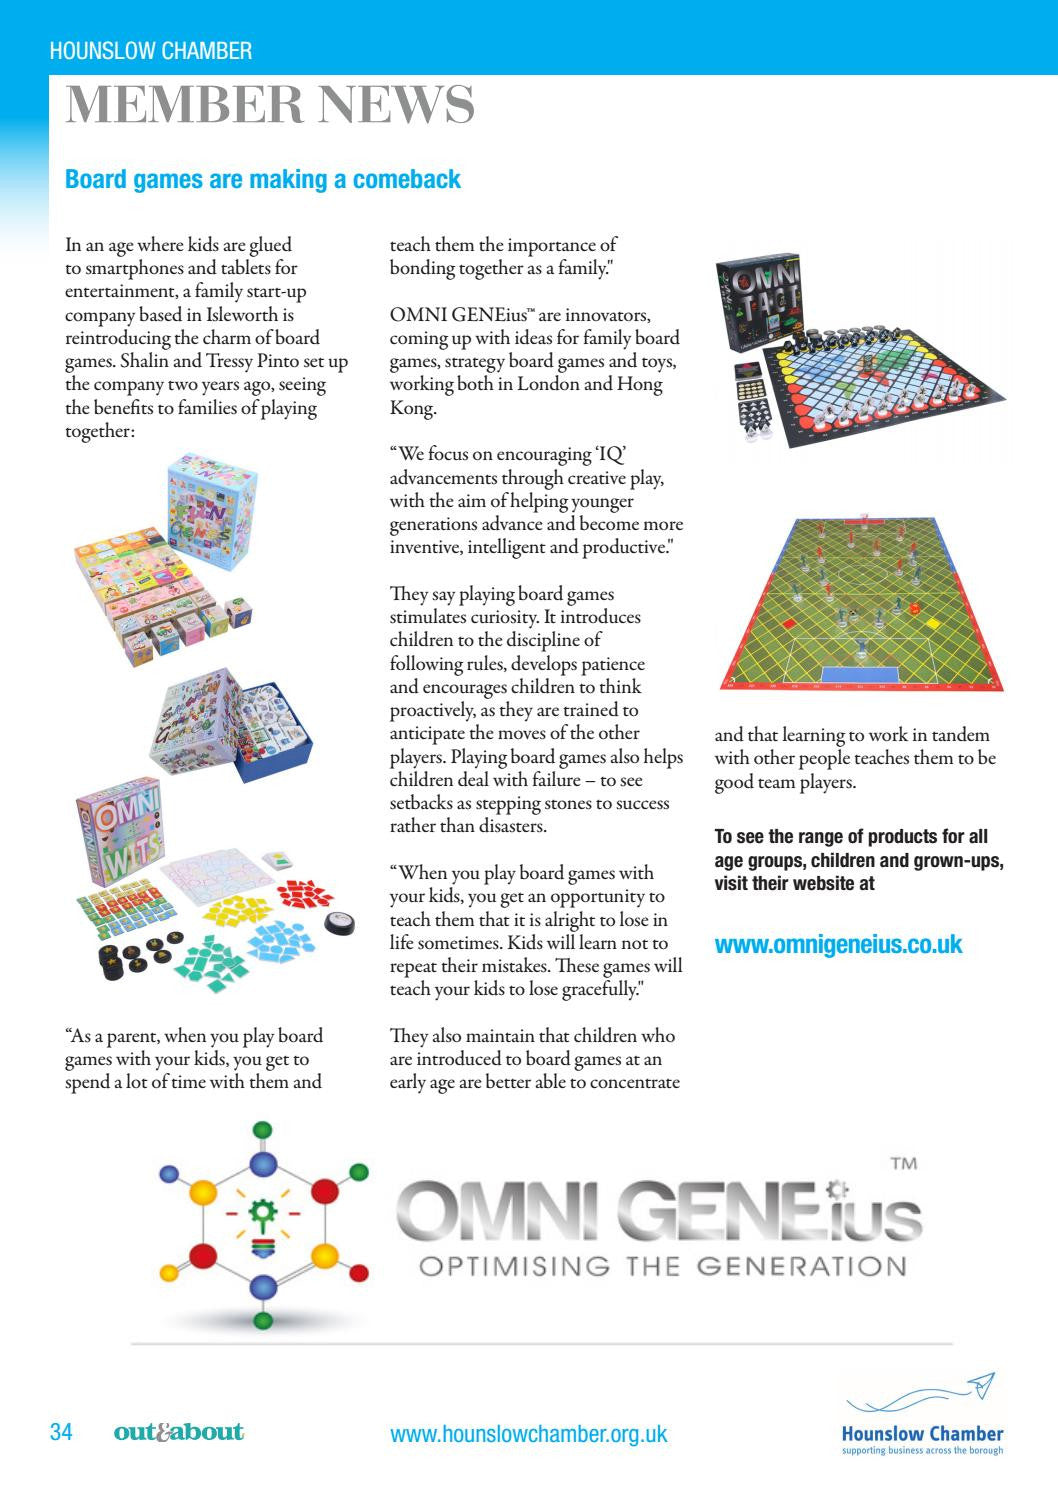 Omni GENEius Featured